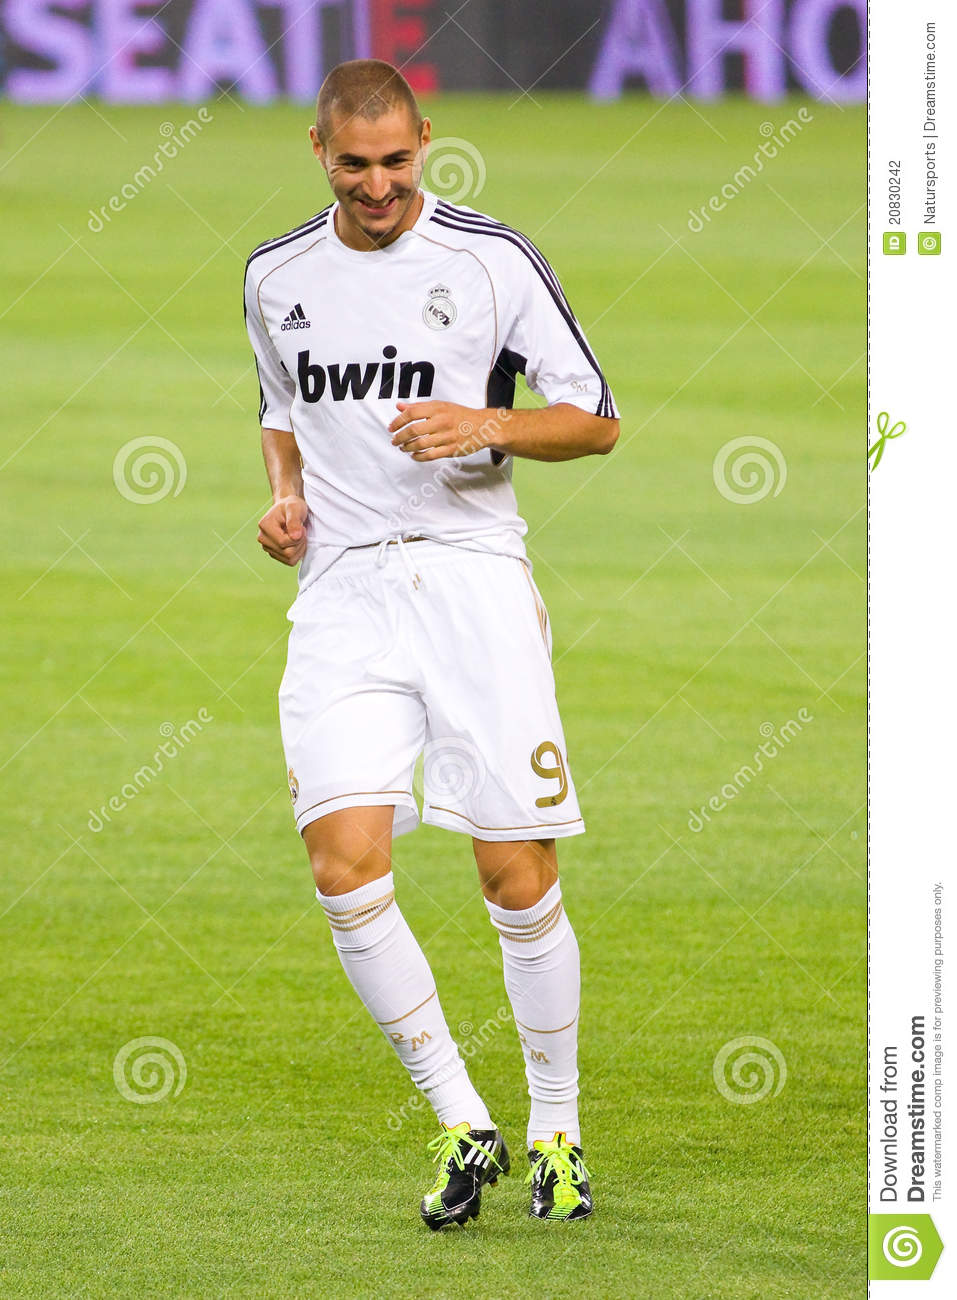 karim benzema of real madrid editorial photography